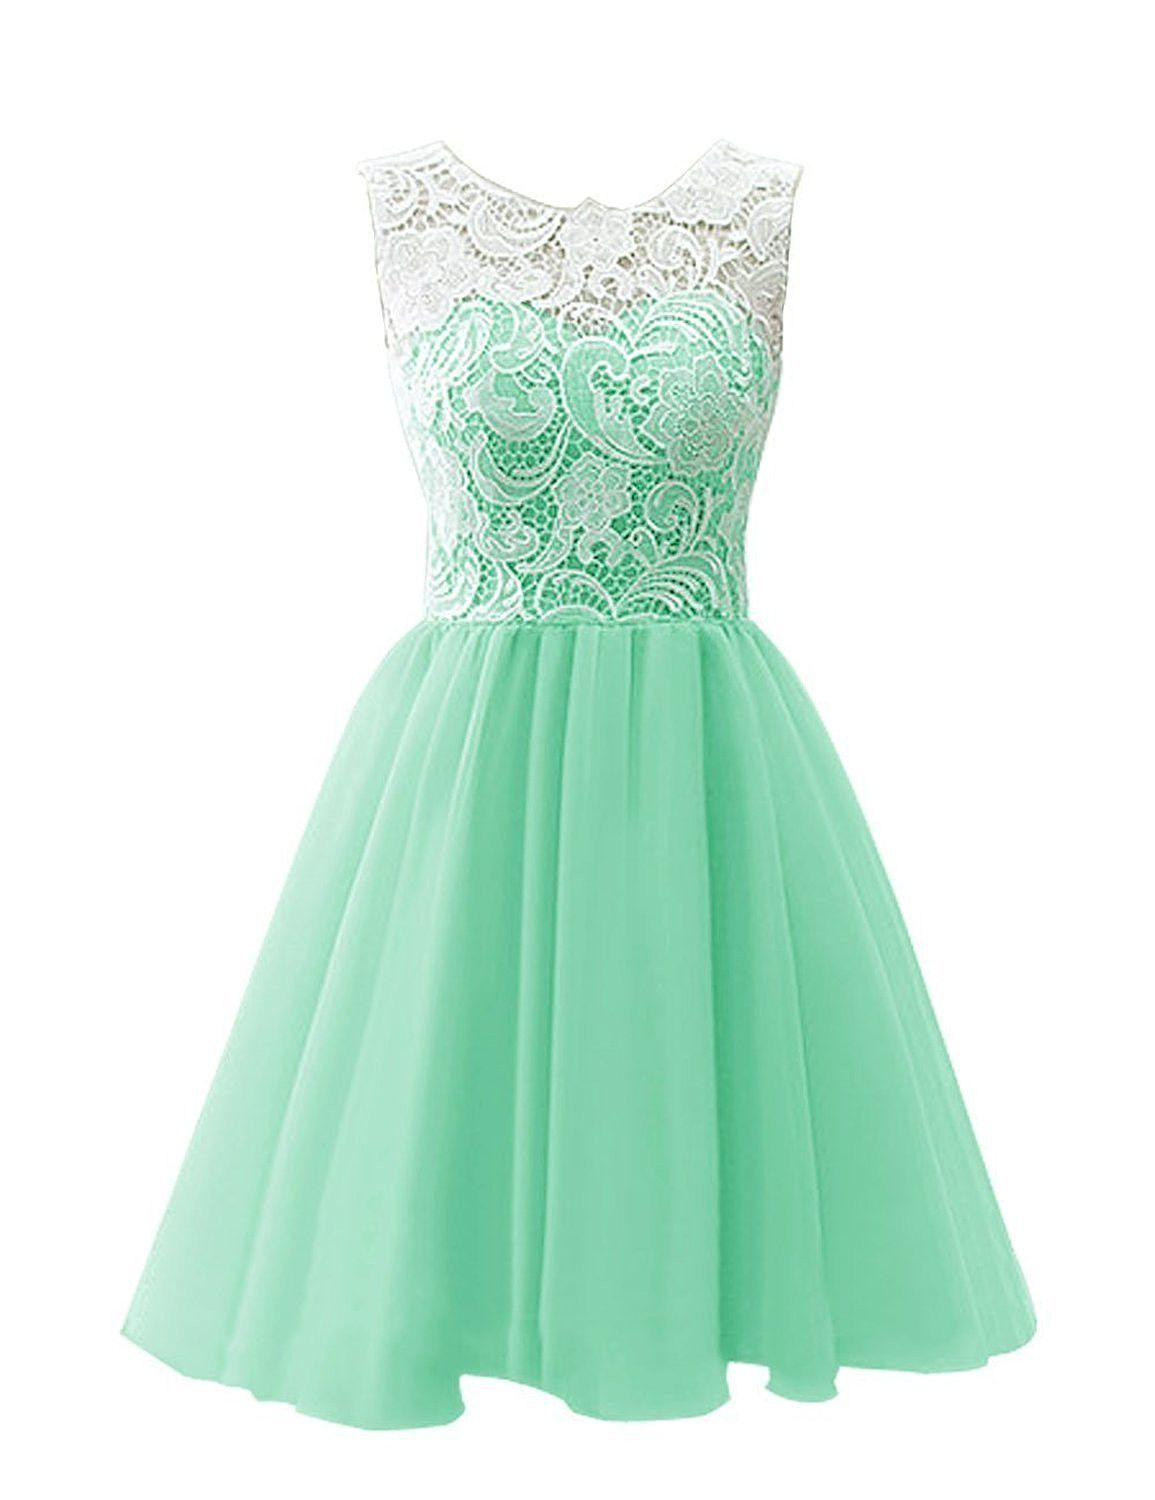 Flower Girl / Adult Ball Gown Lace Short Prom Dress PH217 | Short ...